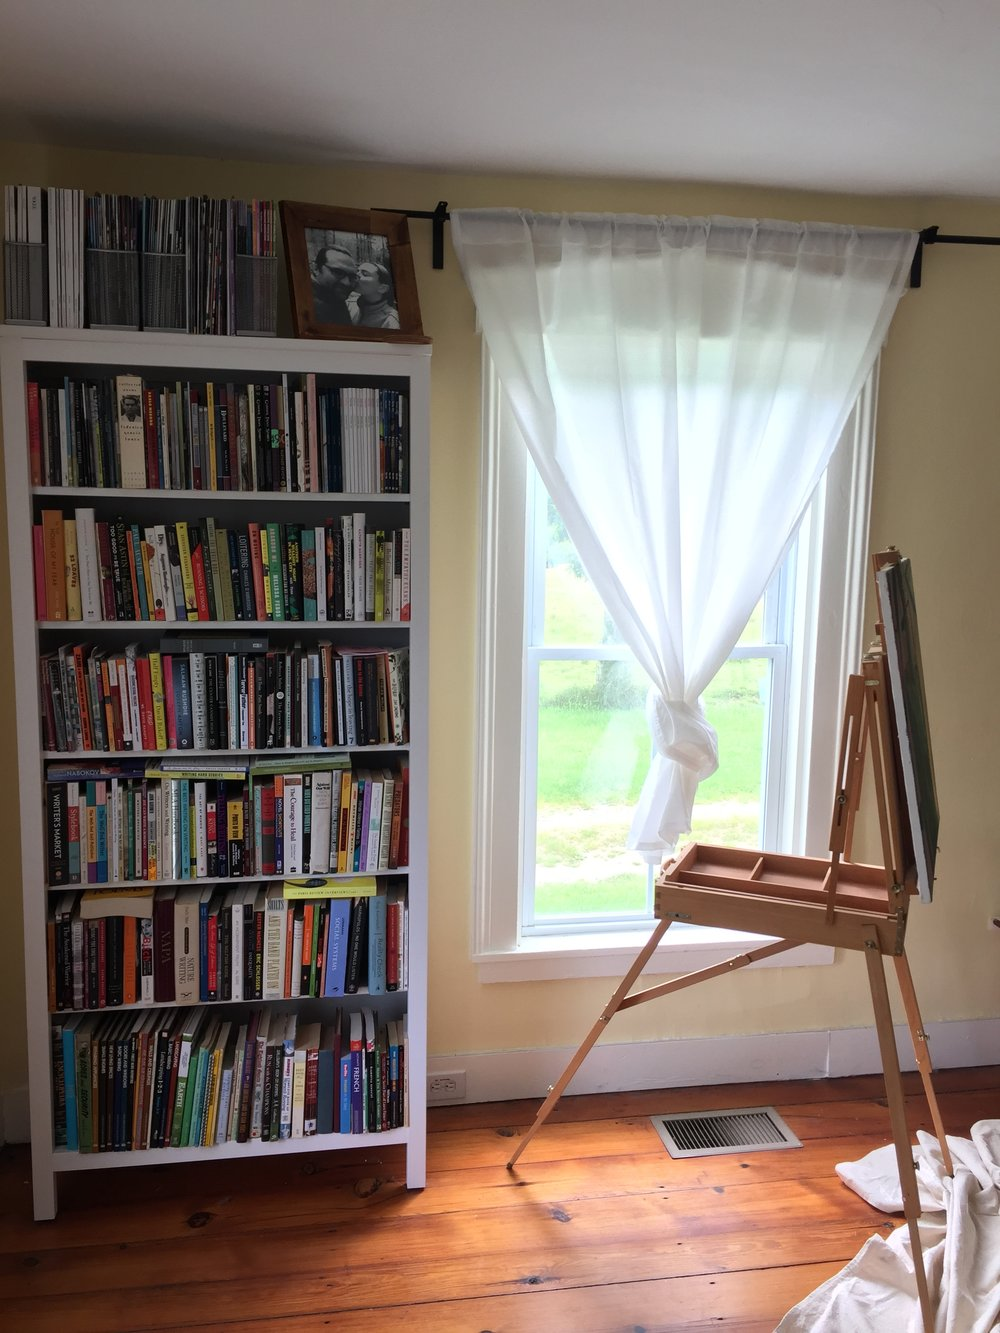 My three choices: the easel, a collection of poetry, and the groundhog visible outside the window.